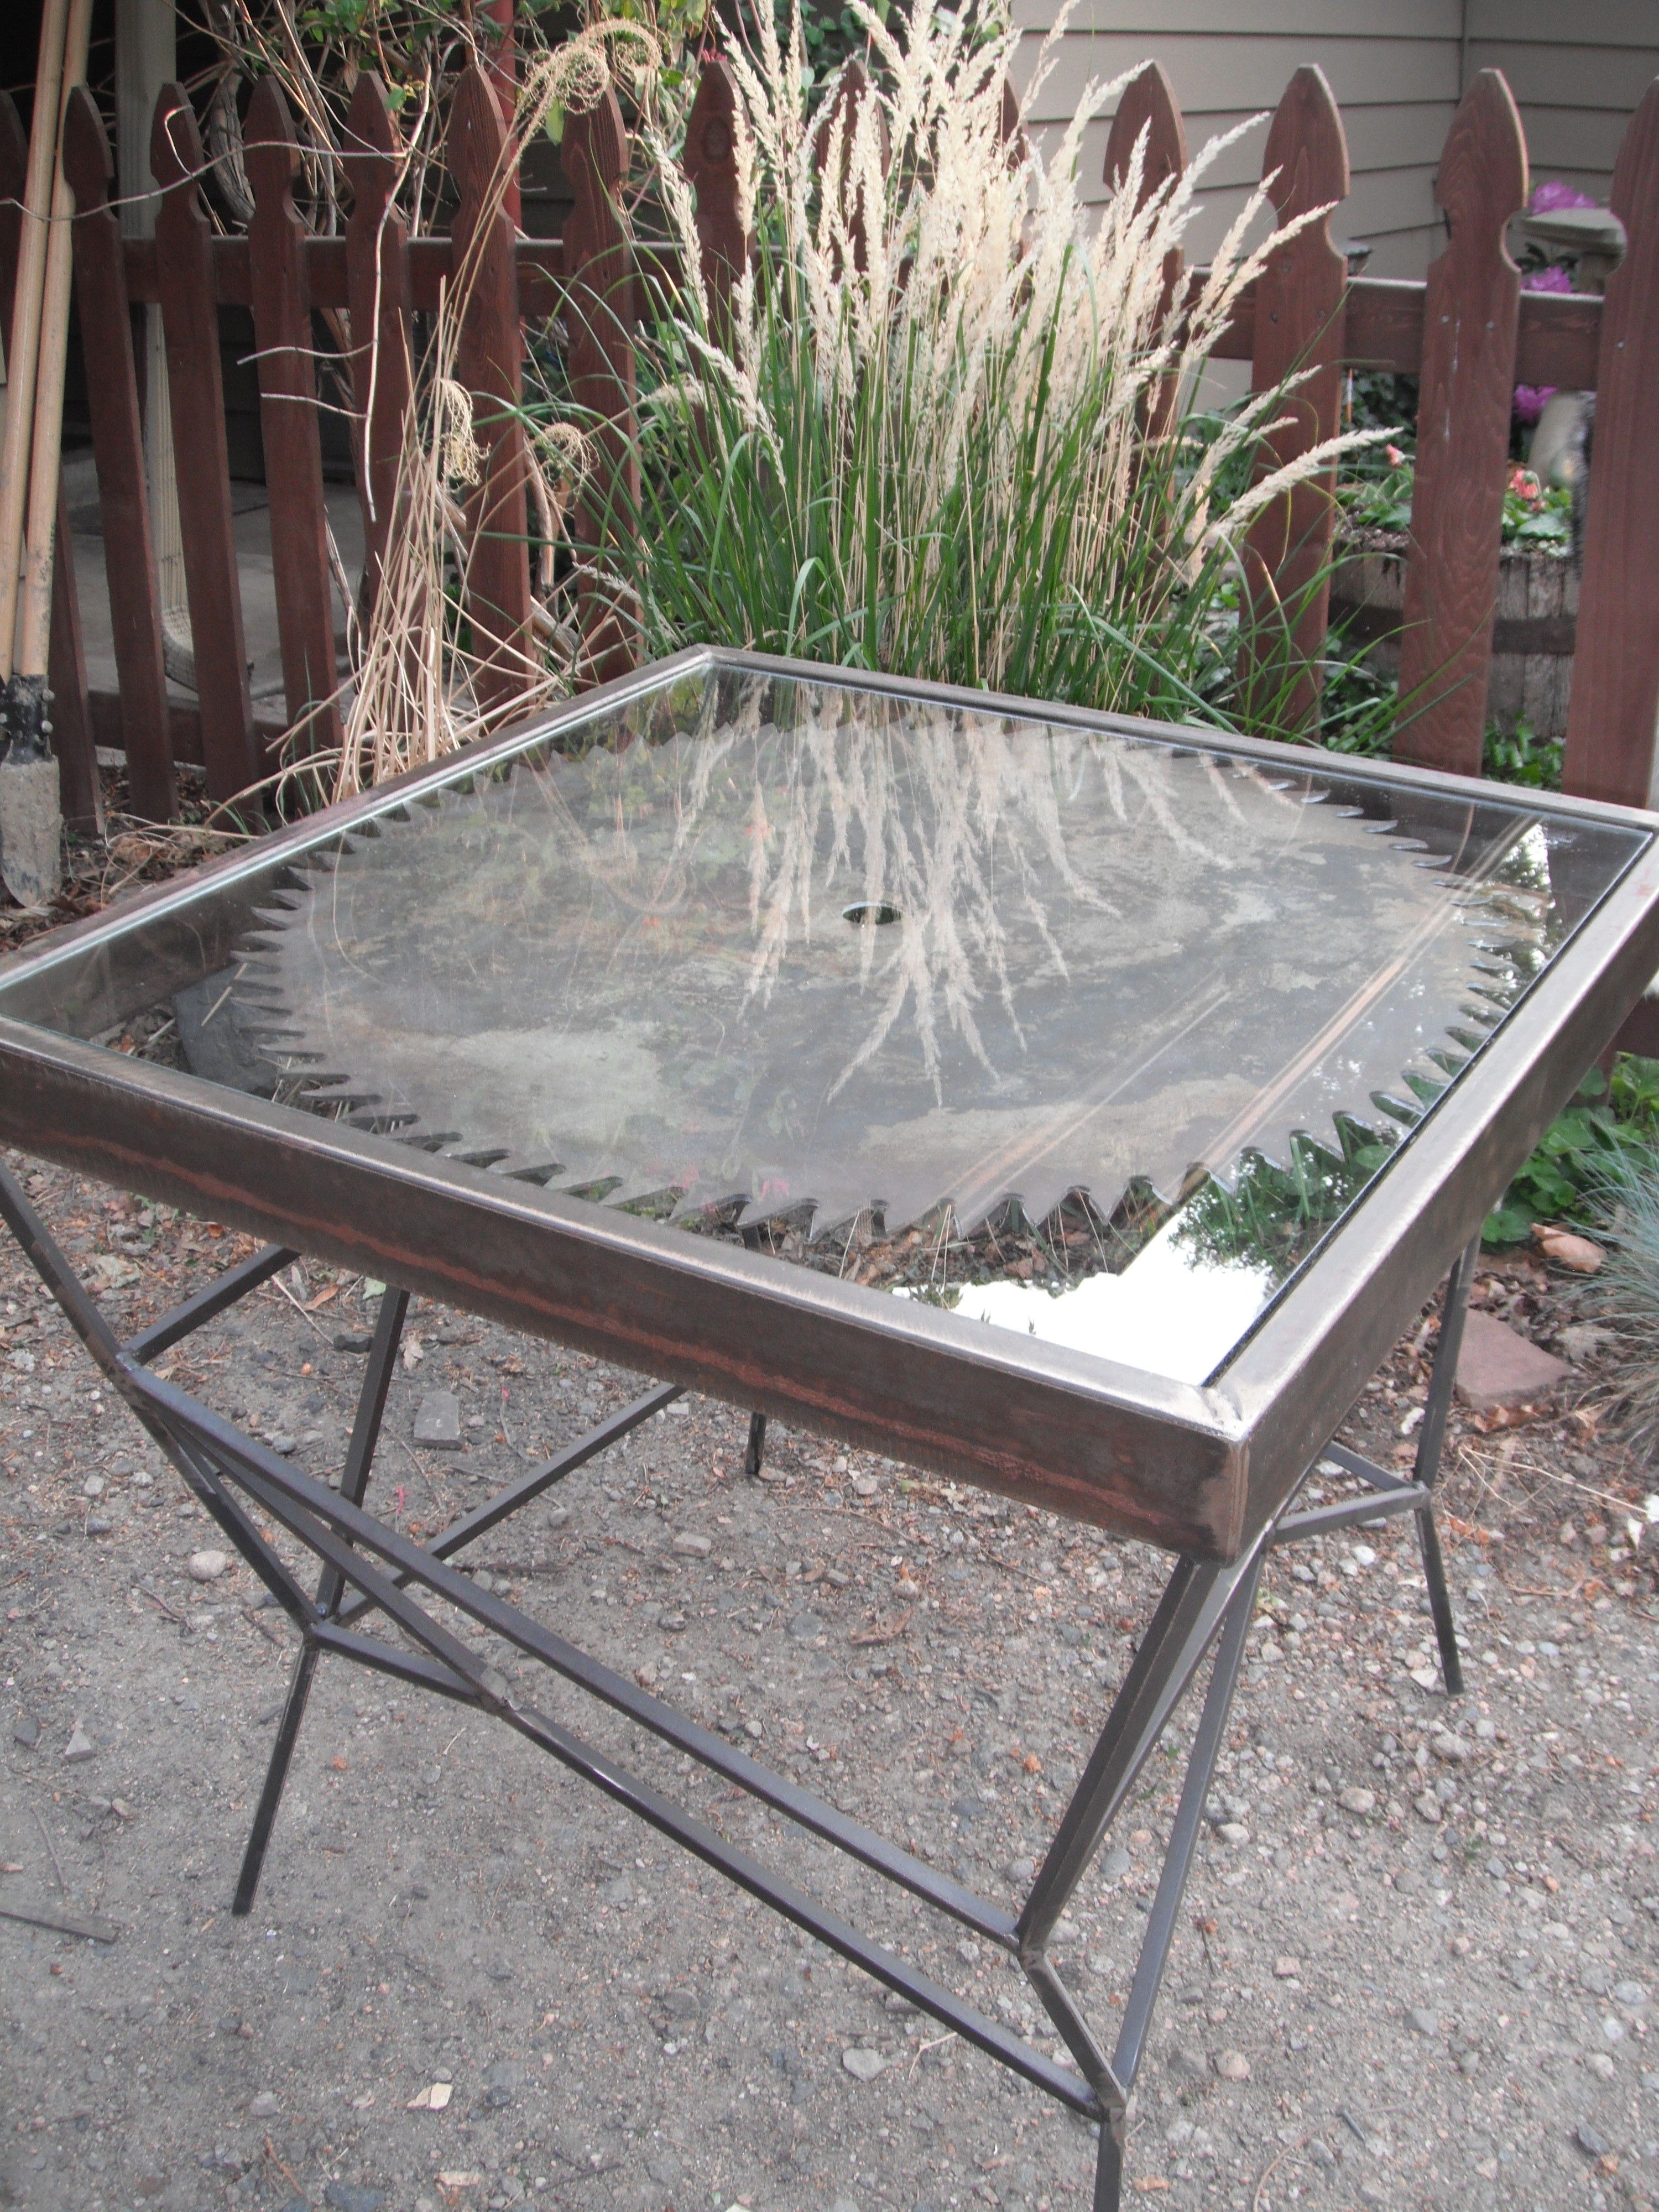 Antique Saw Blade Table $200   Wheat Ridge Http://furnishly.com/